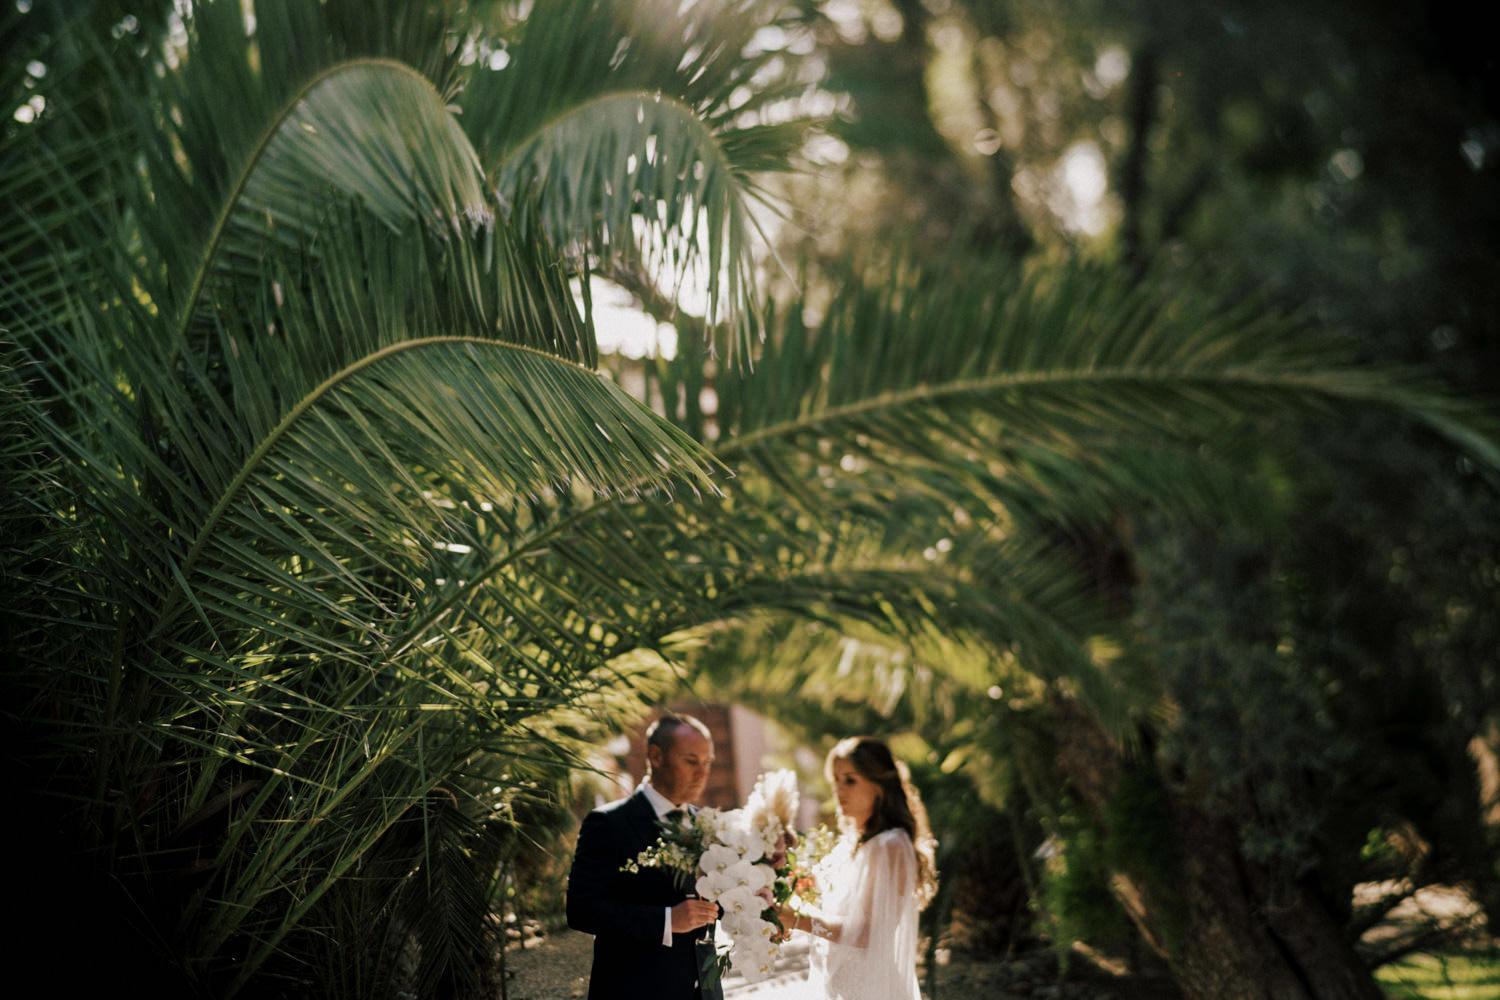 470-marrakech-wedding.jpg